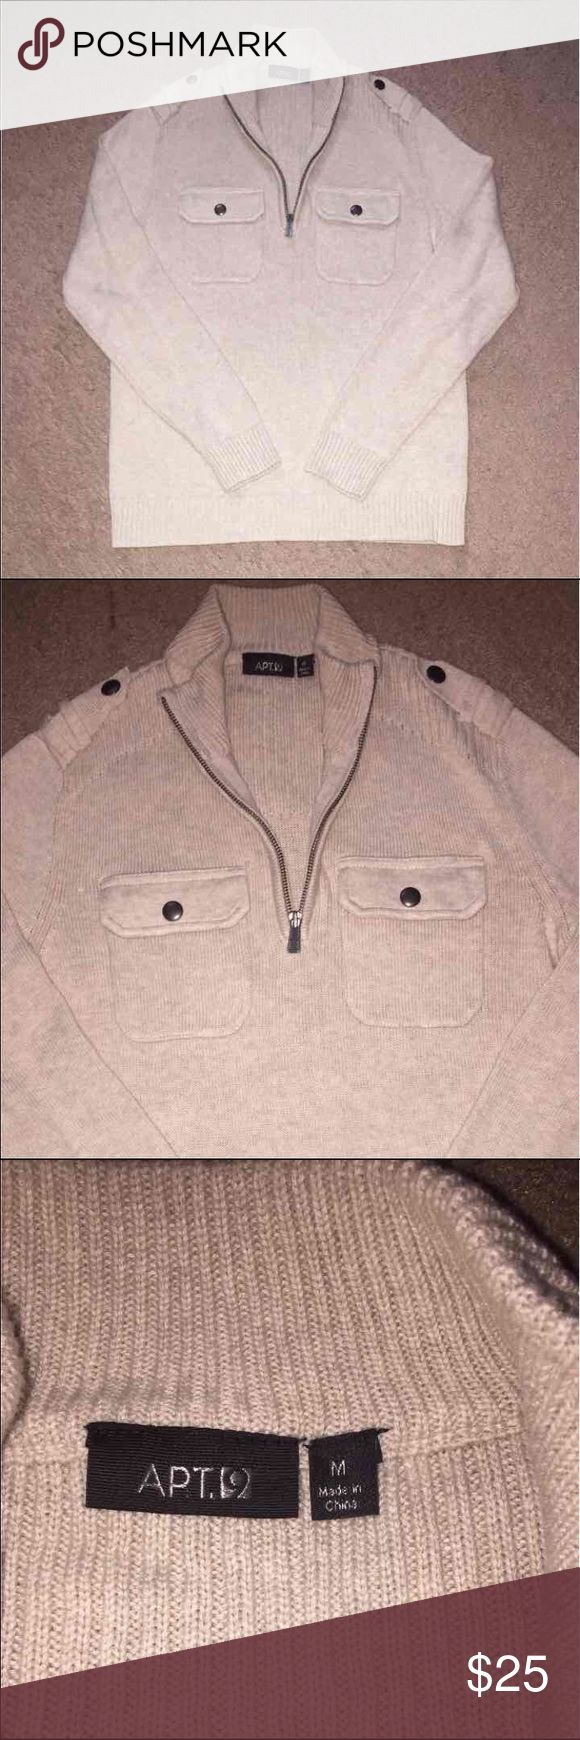 Never Worn Cream Knit Sweater for Men Purchased from Kohls. Size medium. Snug fit, good quality. Apt. 9 Sweaters